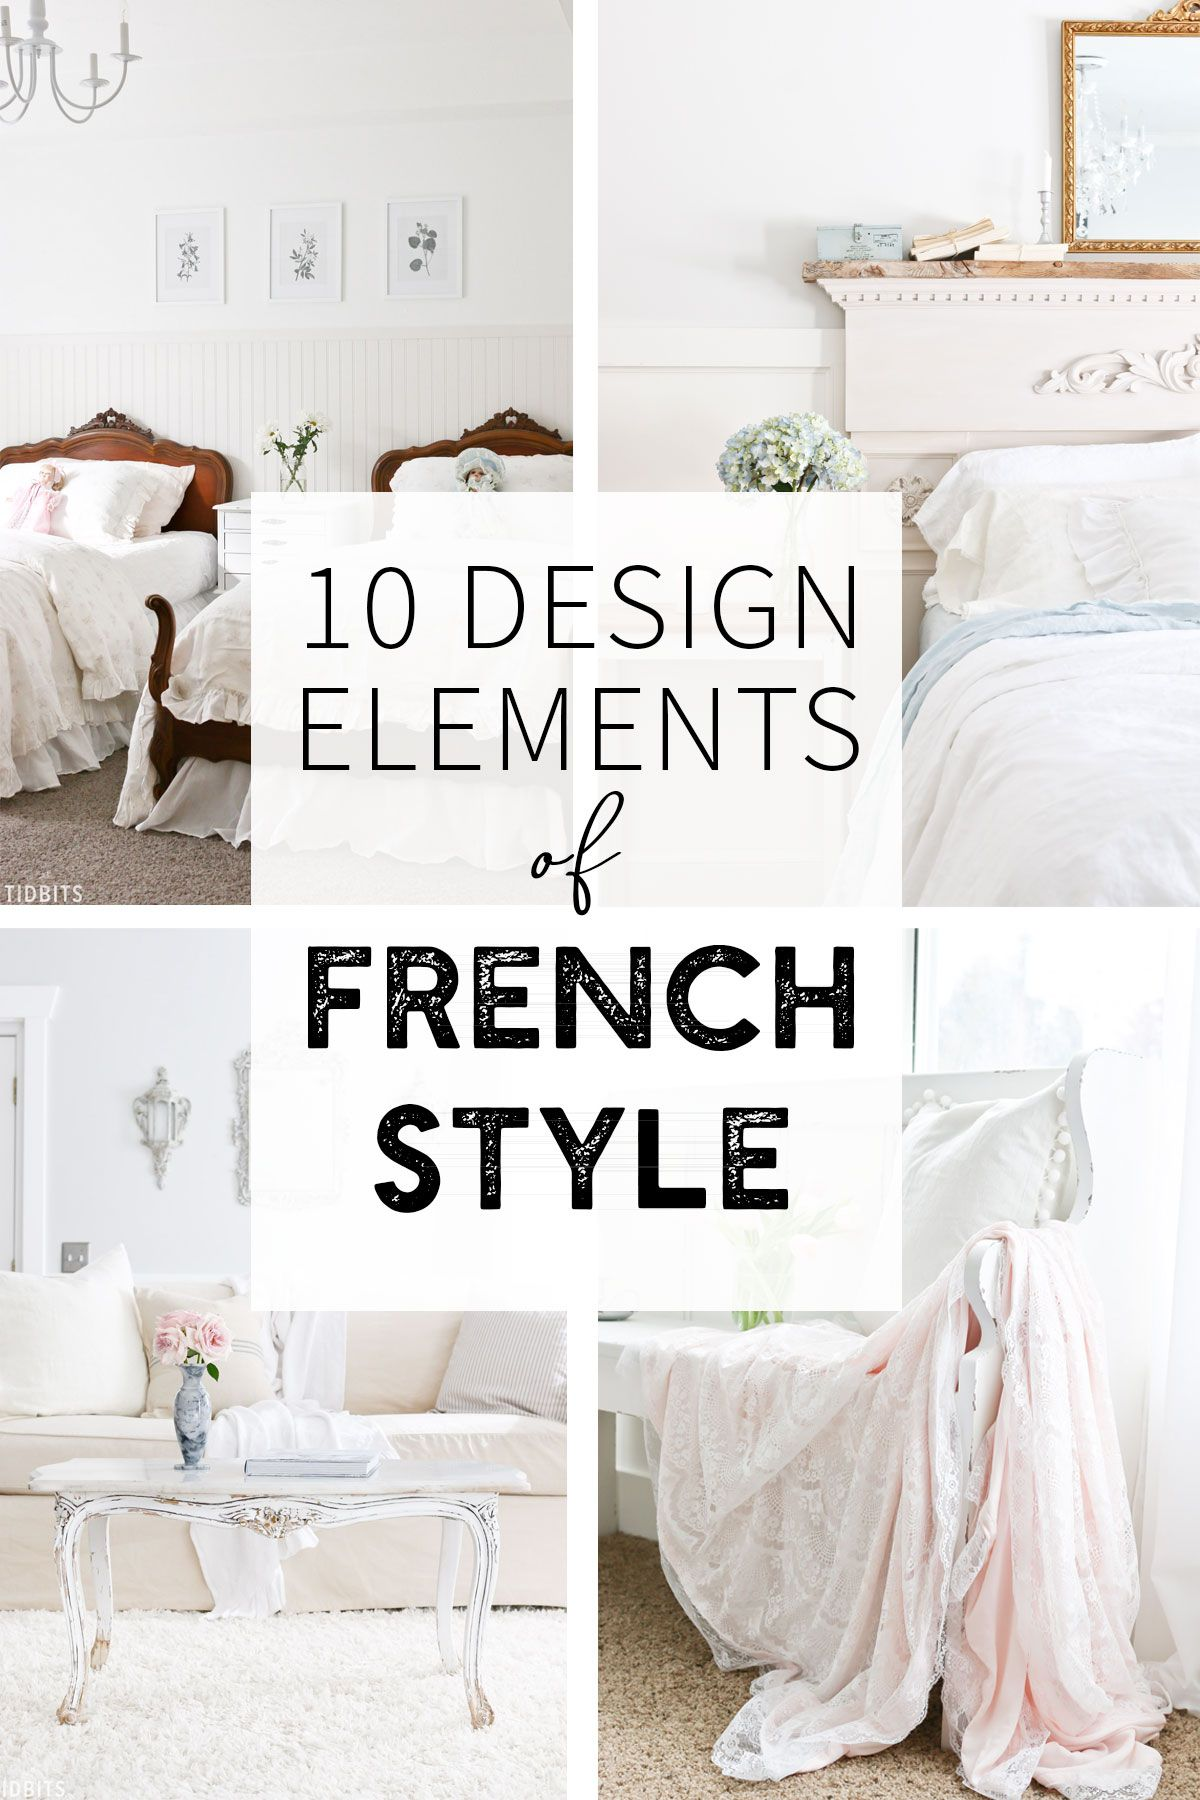 Love French Style 10 Design Elements Of Camitidbits Frenchstyle Frenchdesign Frenchfarmhouse Designelements Frenchhome